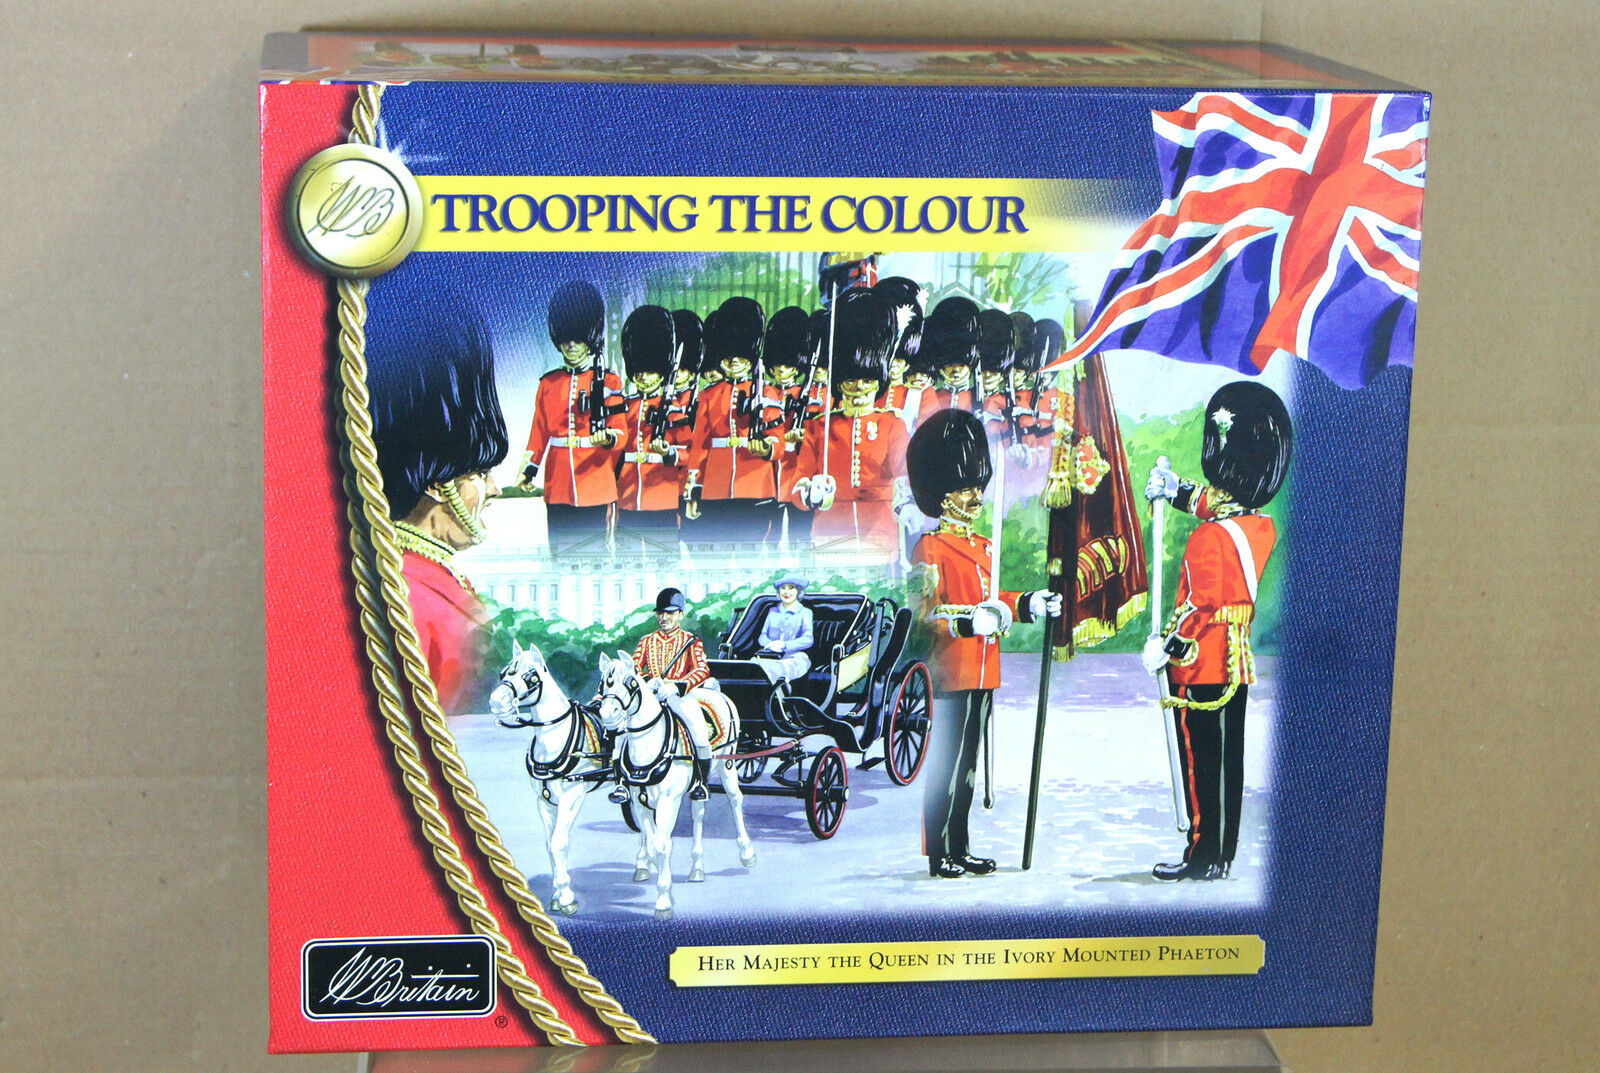 BRITAINS 40111 TROOPING THE COLOUR COLOUR COLOUR HER MAJESTY THE QUEEN in the IVORY PHAETON nj d0b